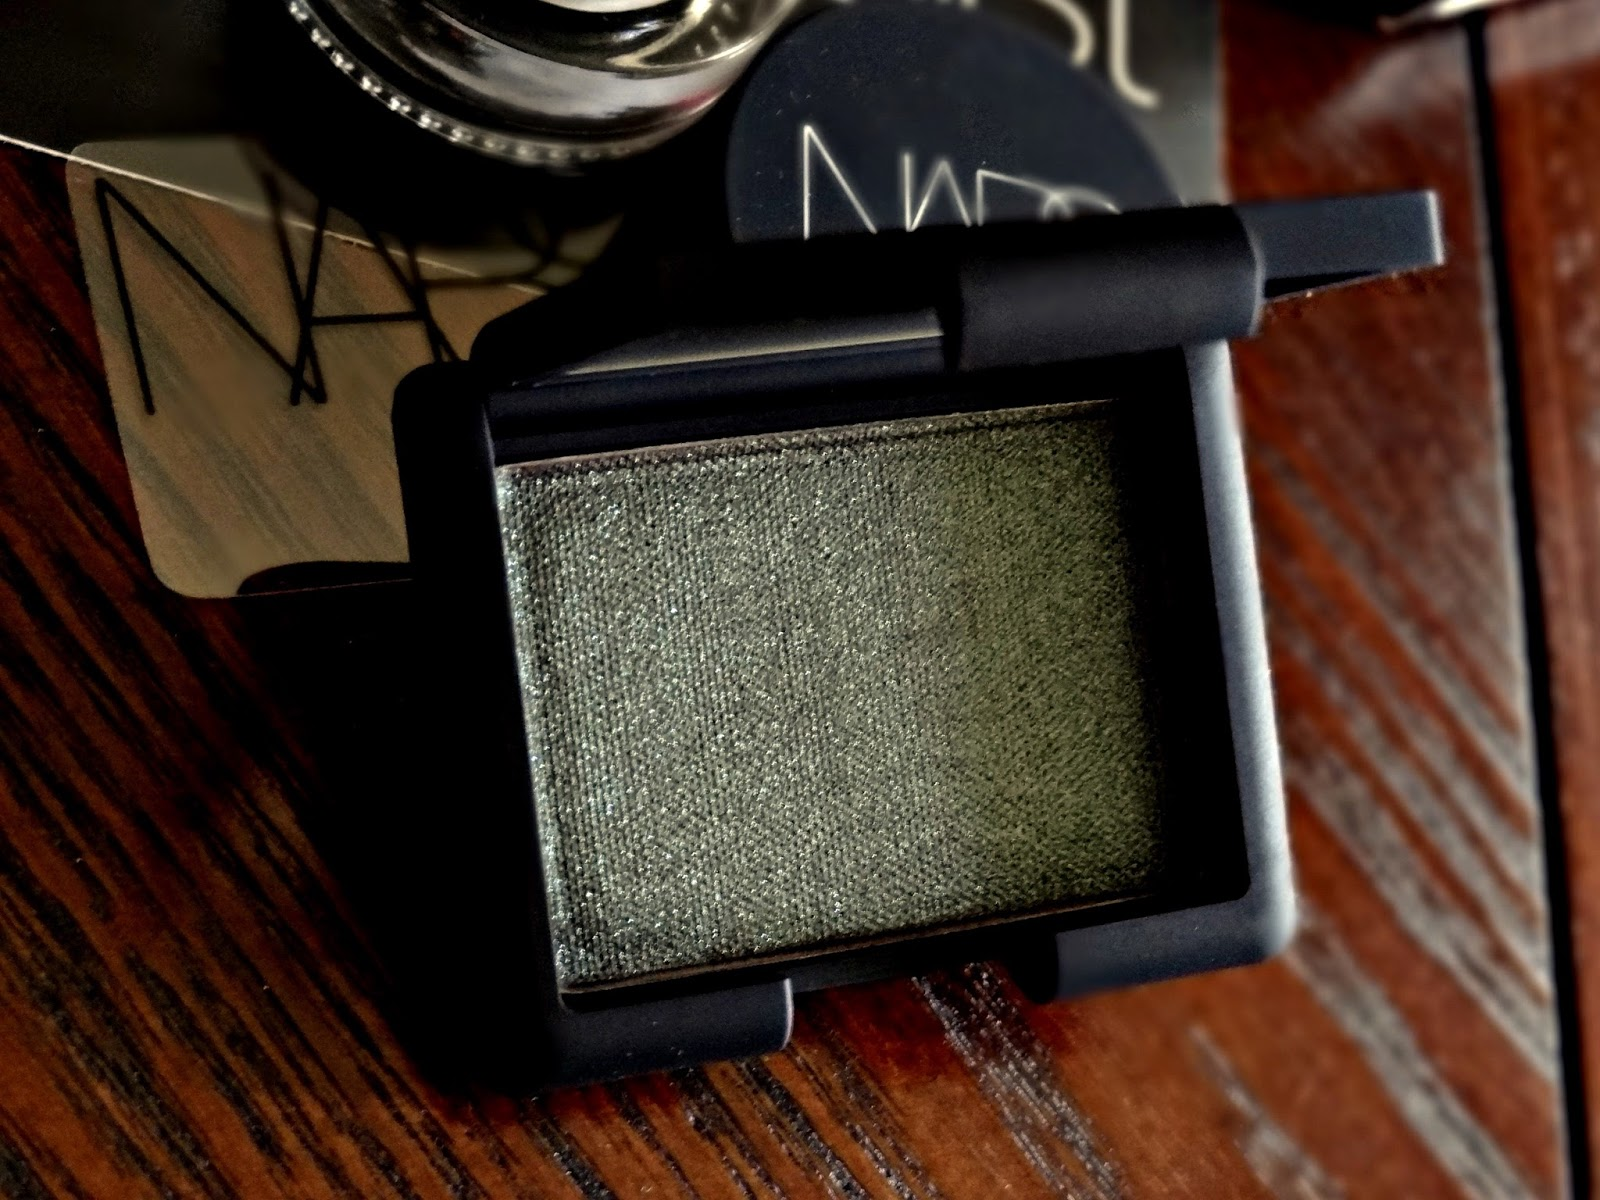 NARS Baalbek Eye Paint and Malacca Shimmer Eye Shadow NARS Adult Swim Summer 2014 Collection